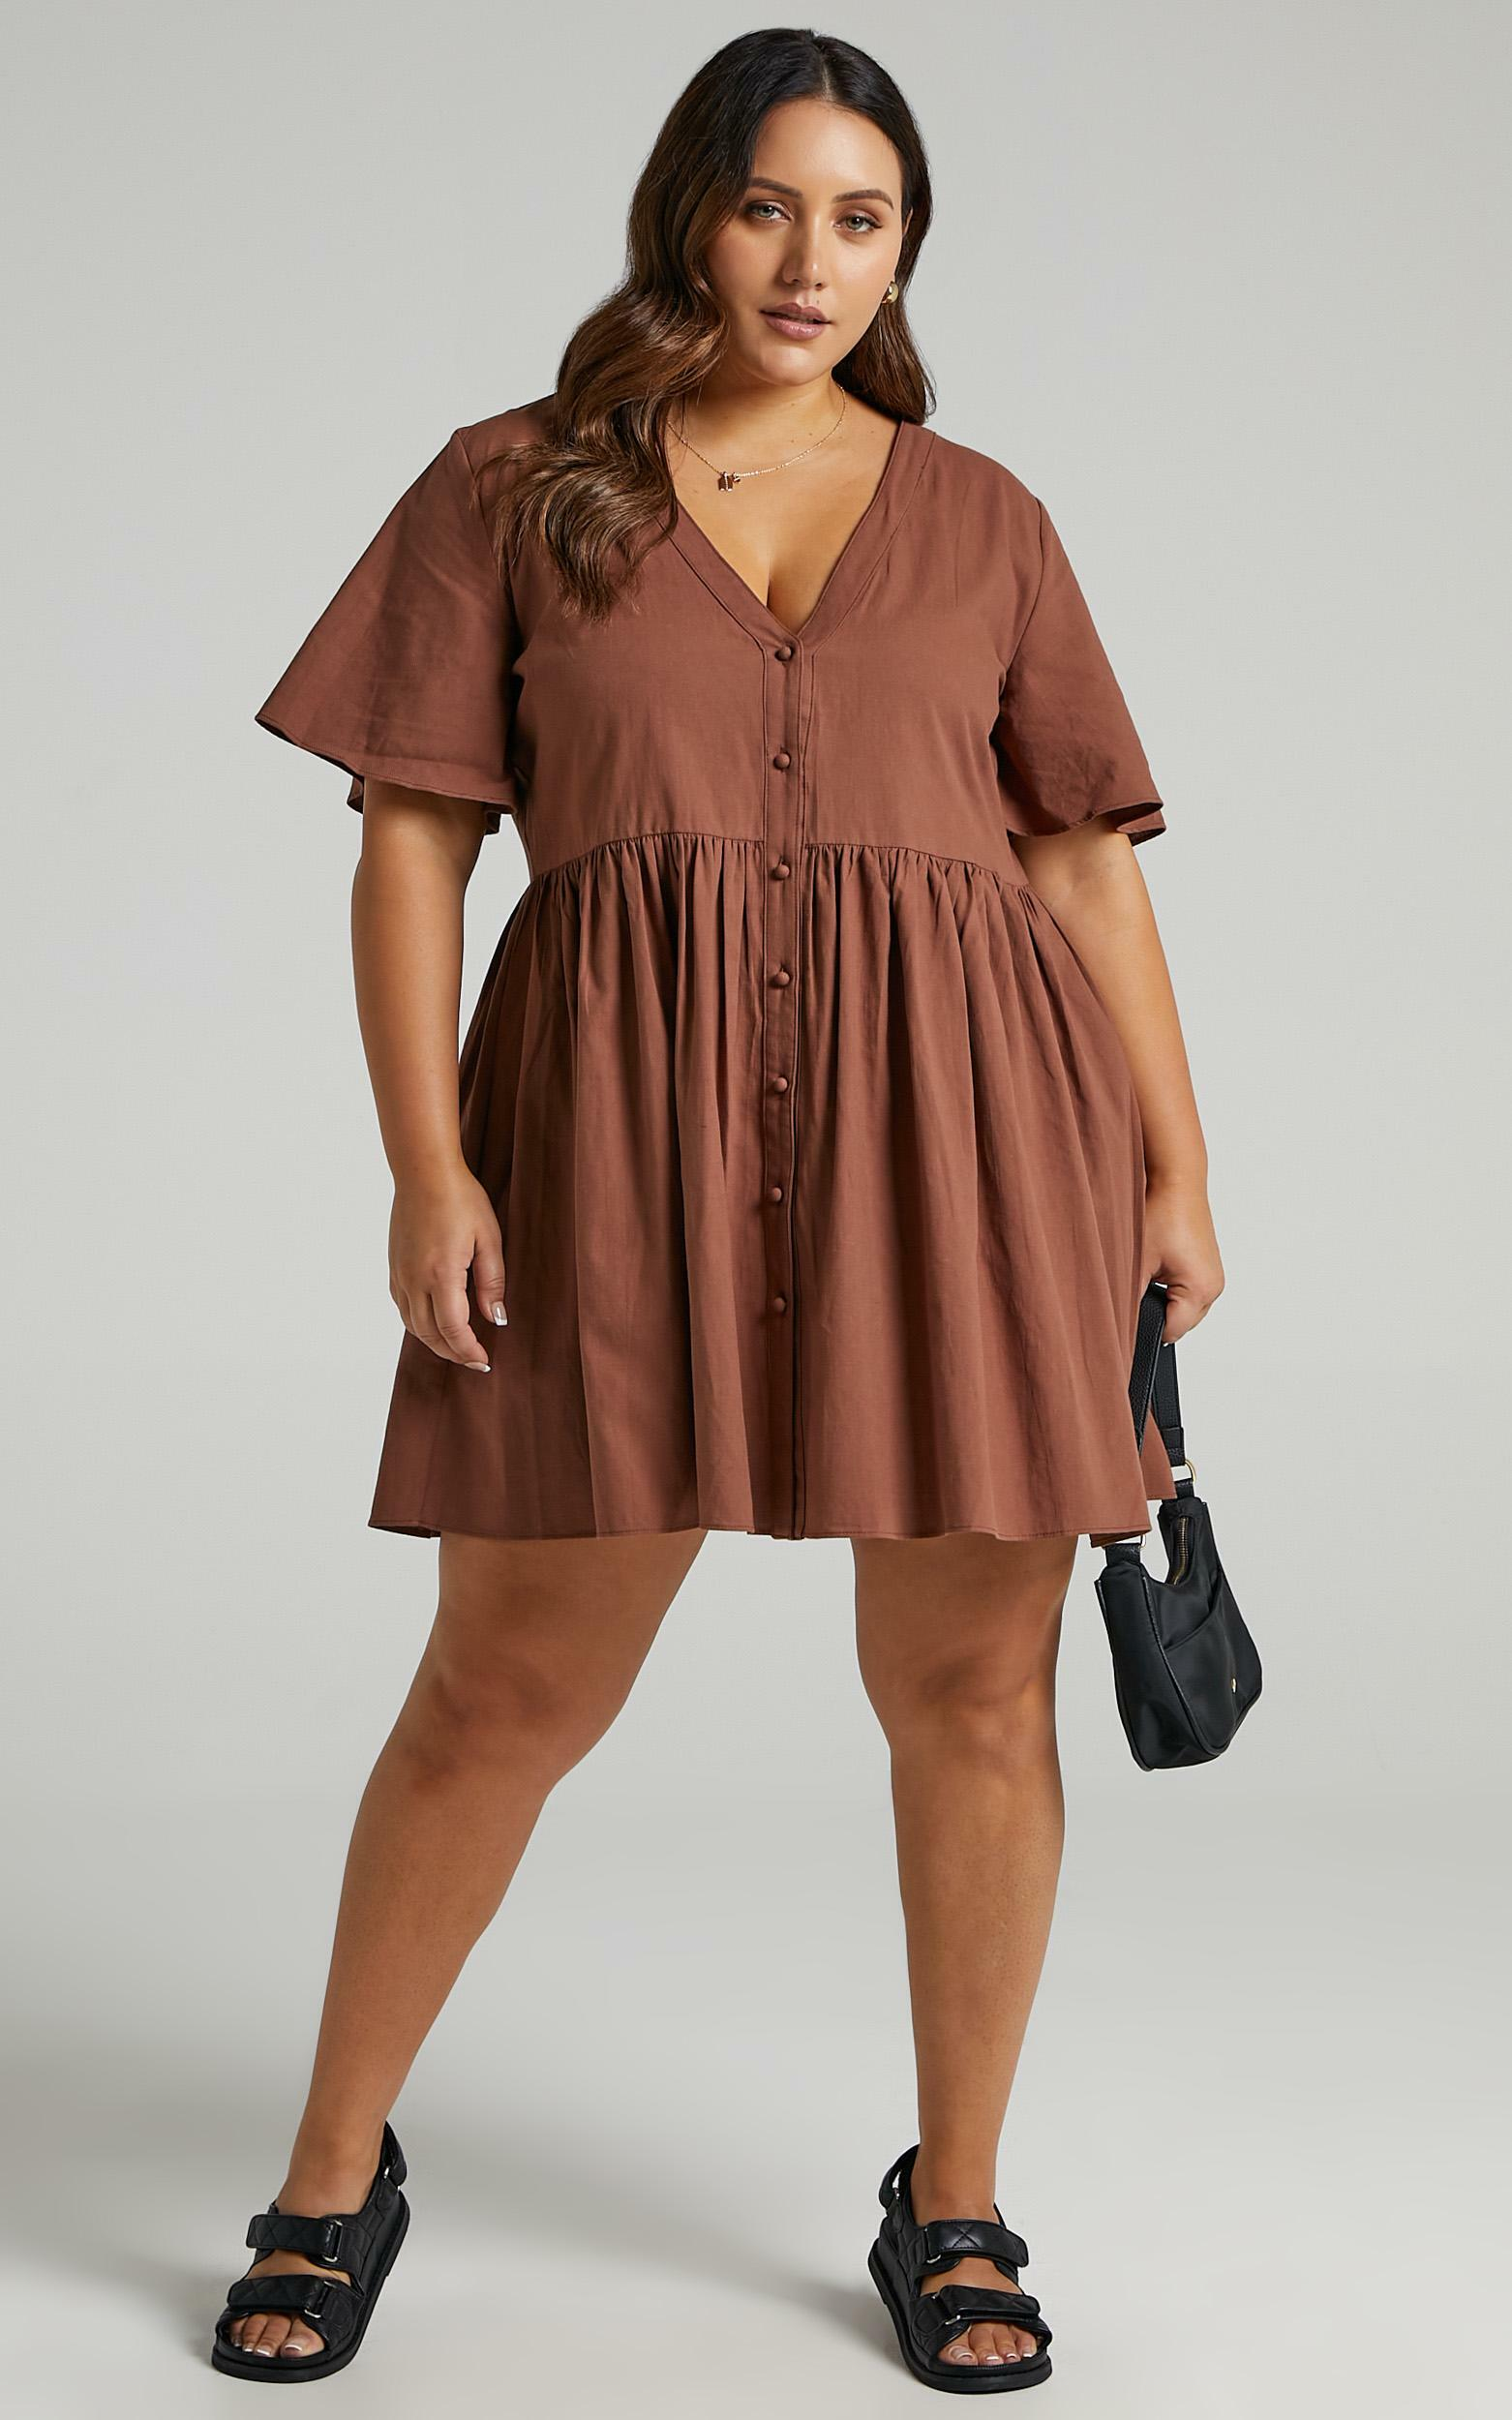 Staycation Smock Button Up Mini Dress in Chocolate - 06, BRN5, hi-res image number null